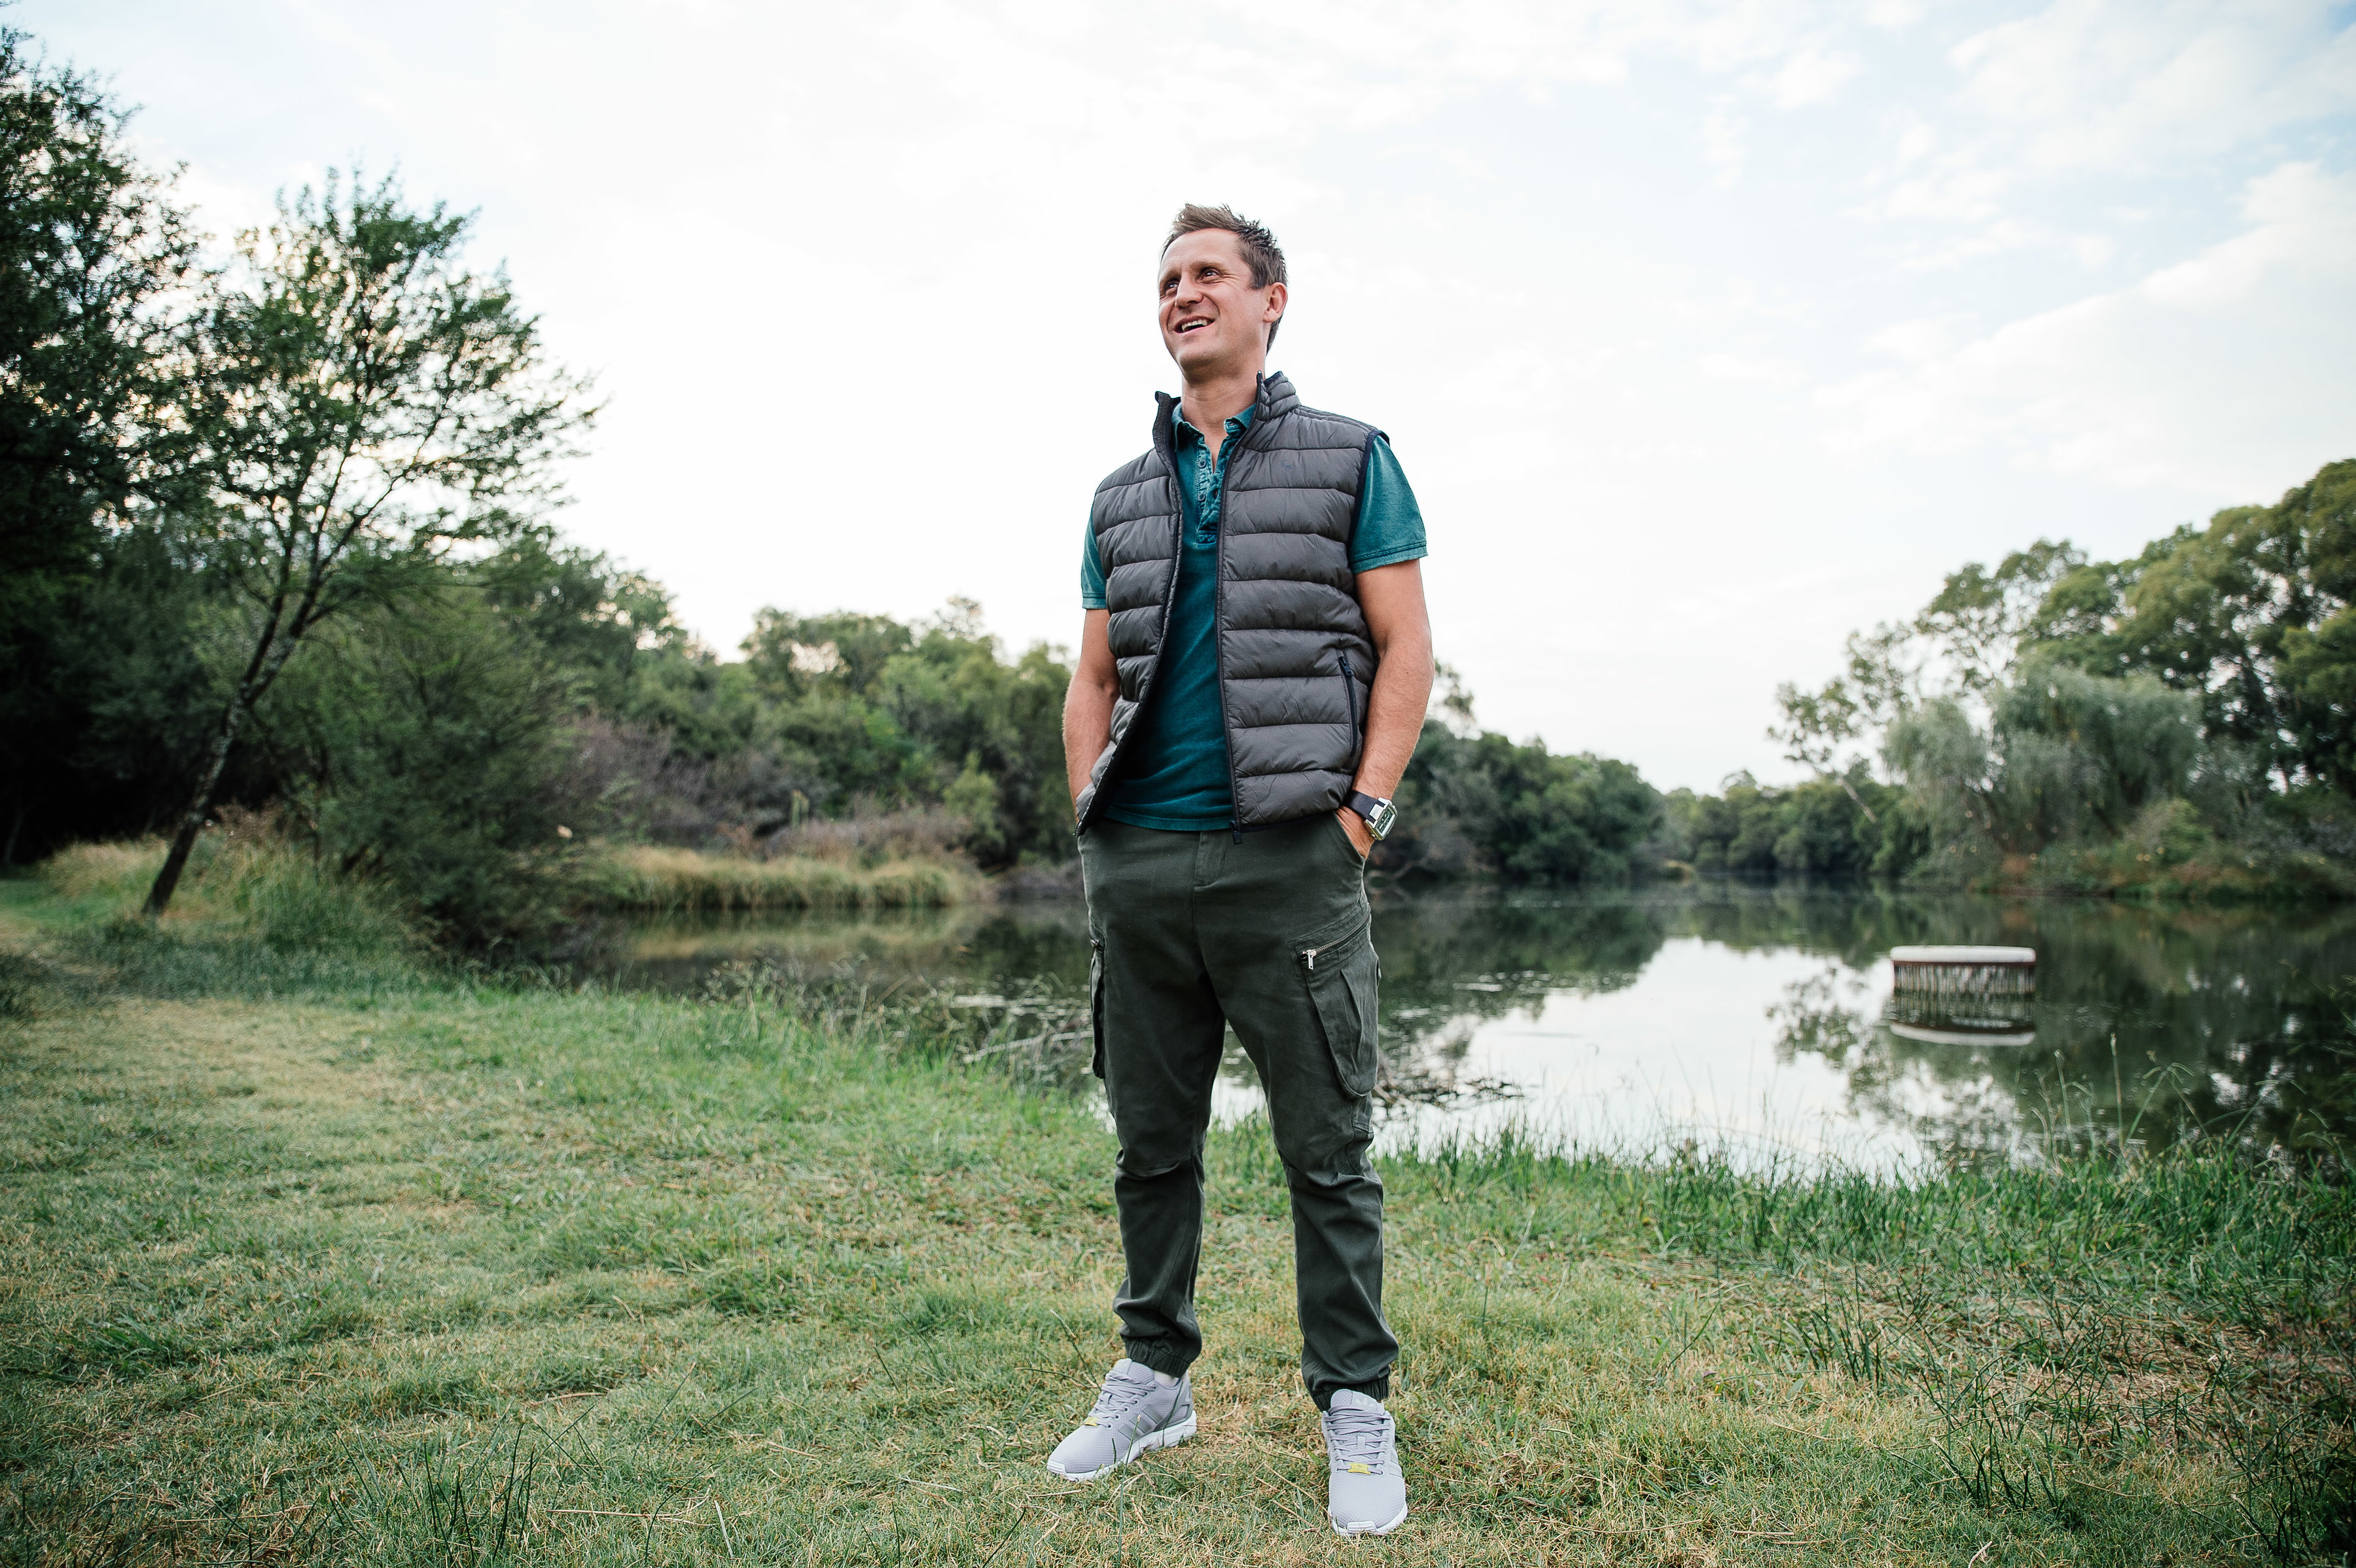 Smartguy Street Style • How to style Greenery